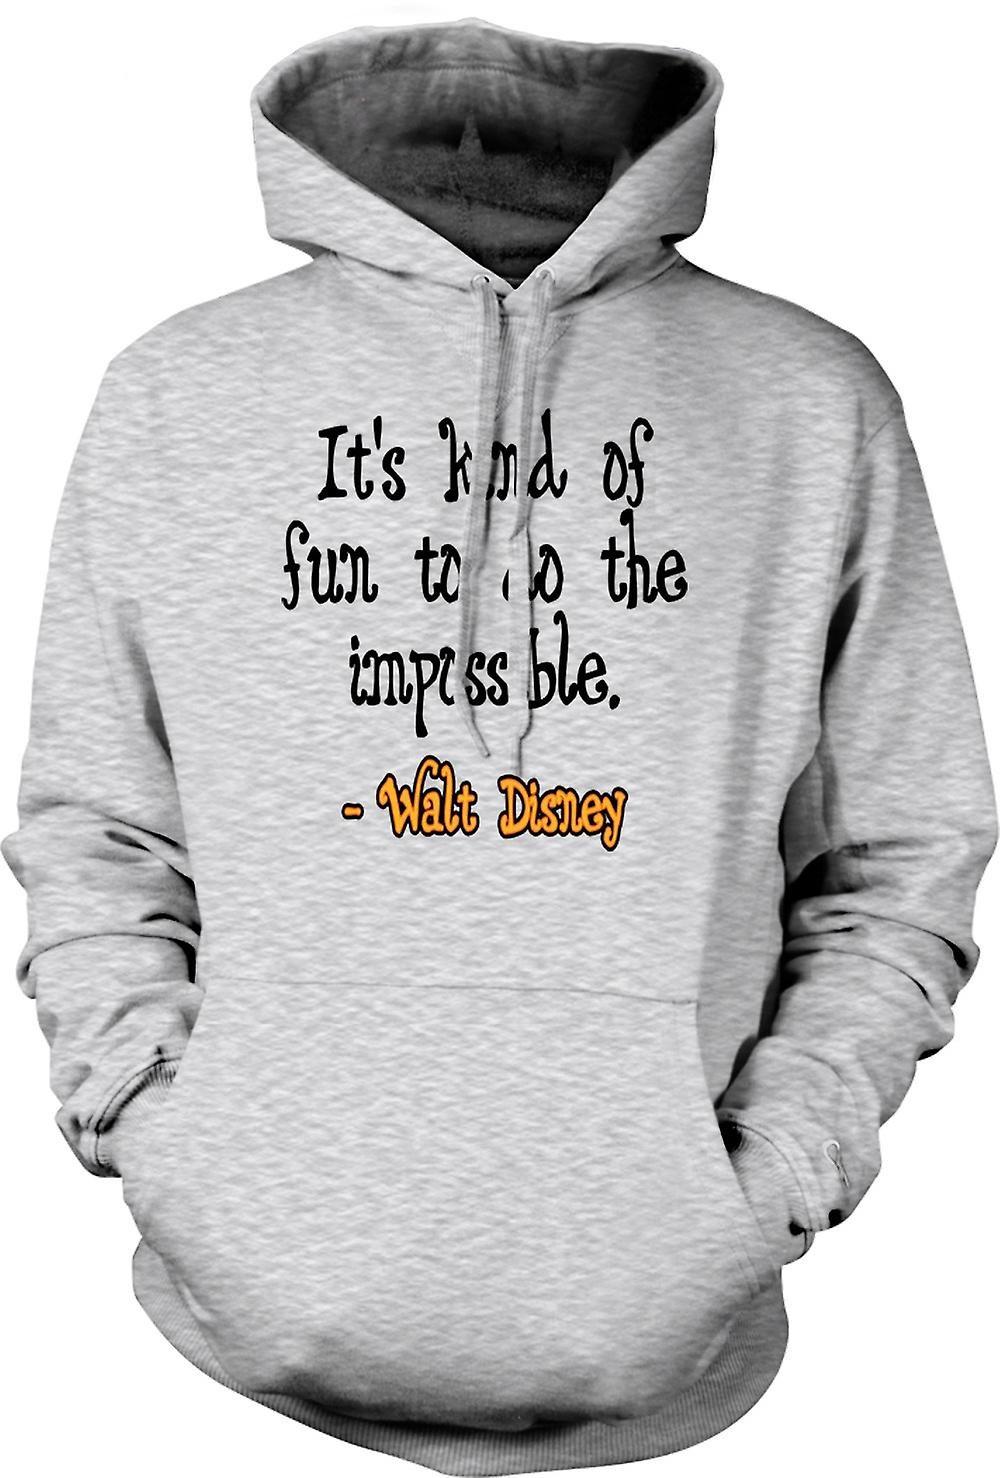 Mens Hoodie - It's Kind Of Fun To Do The Impossible - Walt Disney